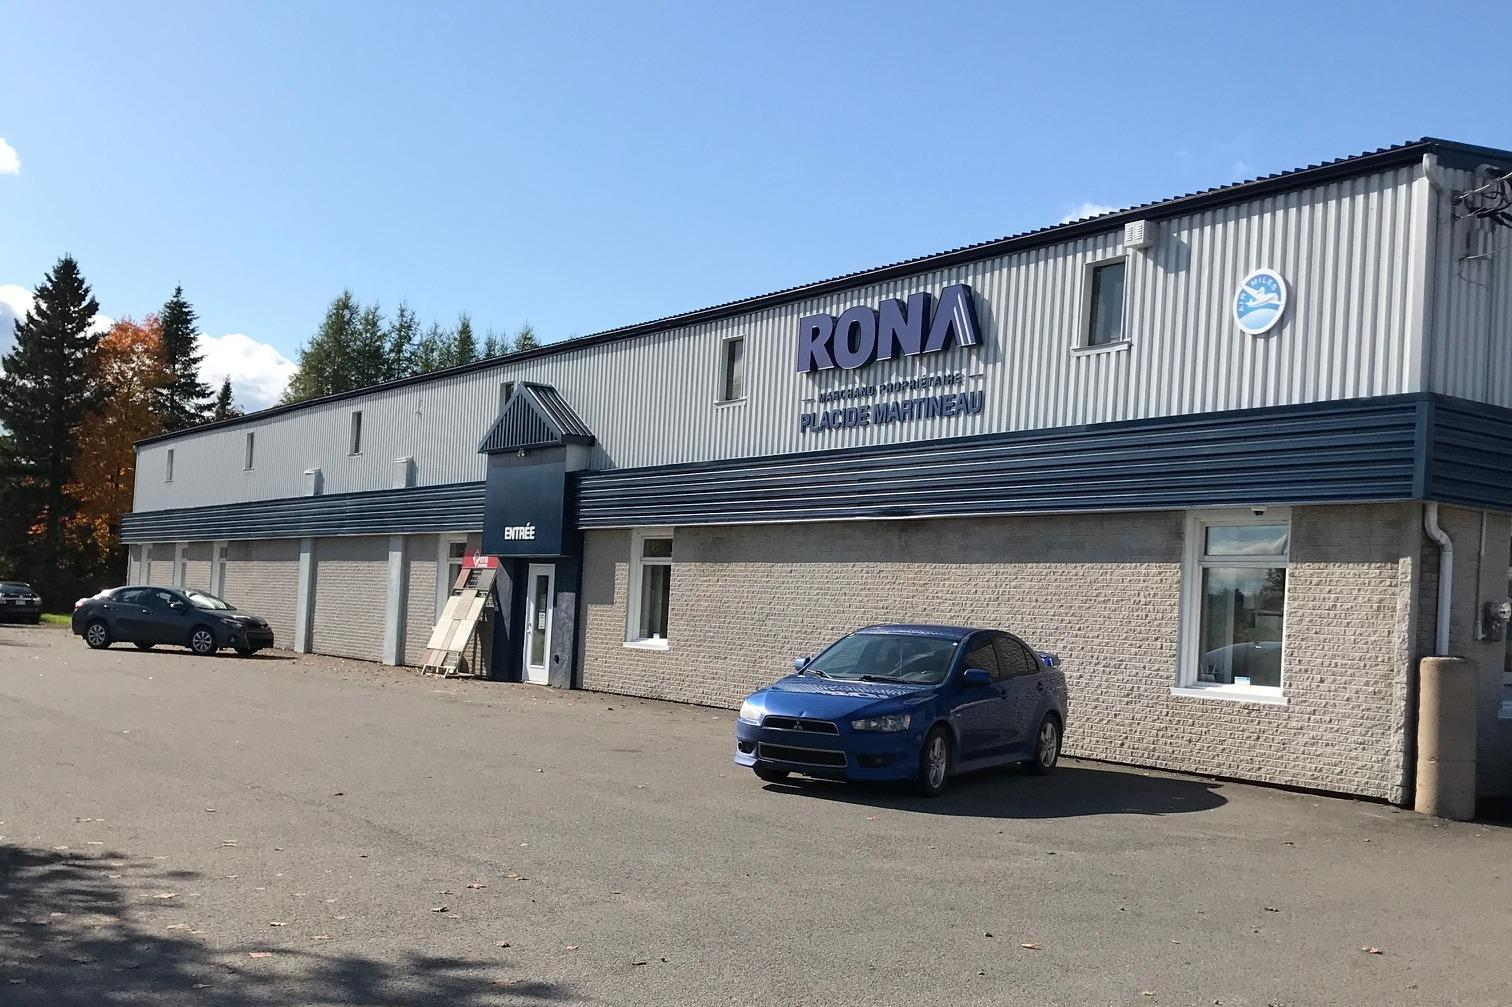 RONA Placide Martineau Inc. (Saint-Apollinaire)